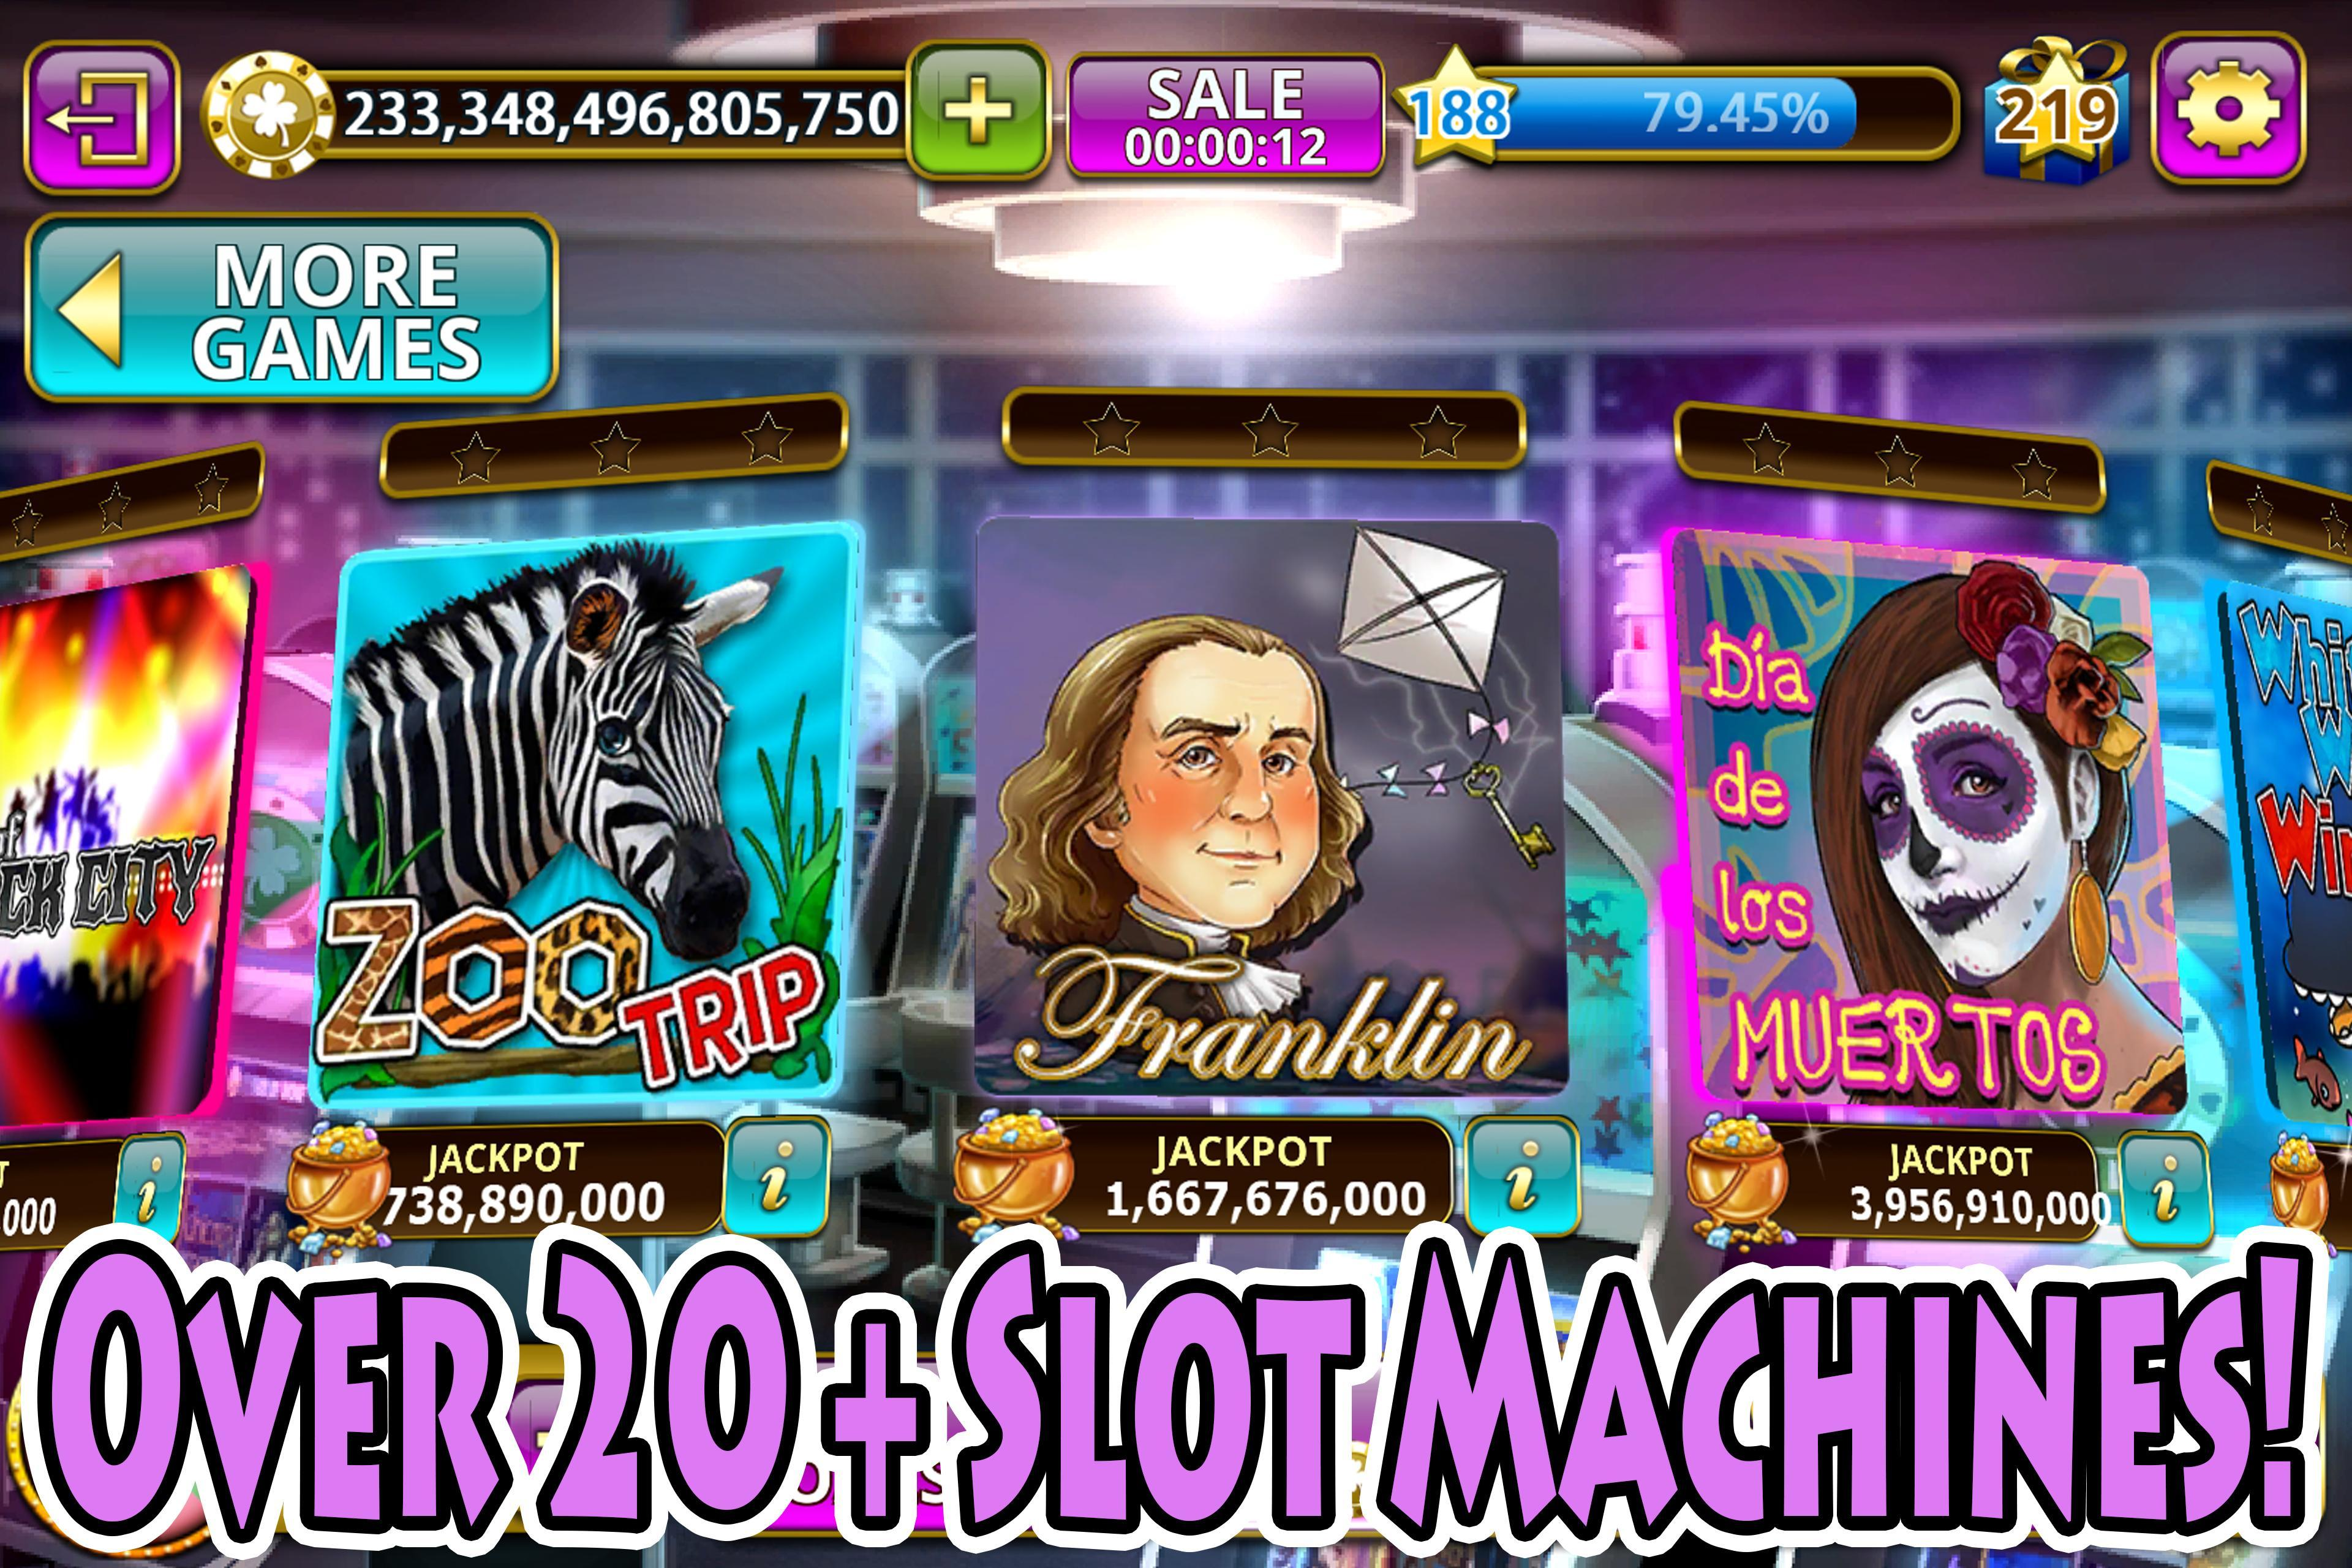 Latest free casino slot games casino gambling laws by state